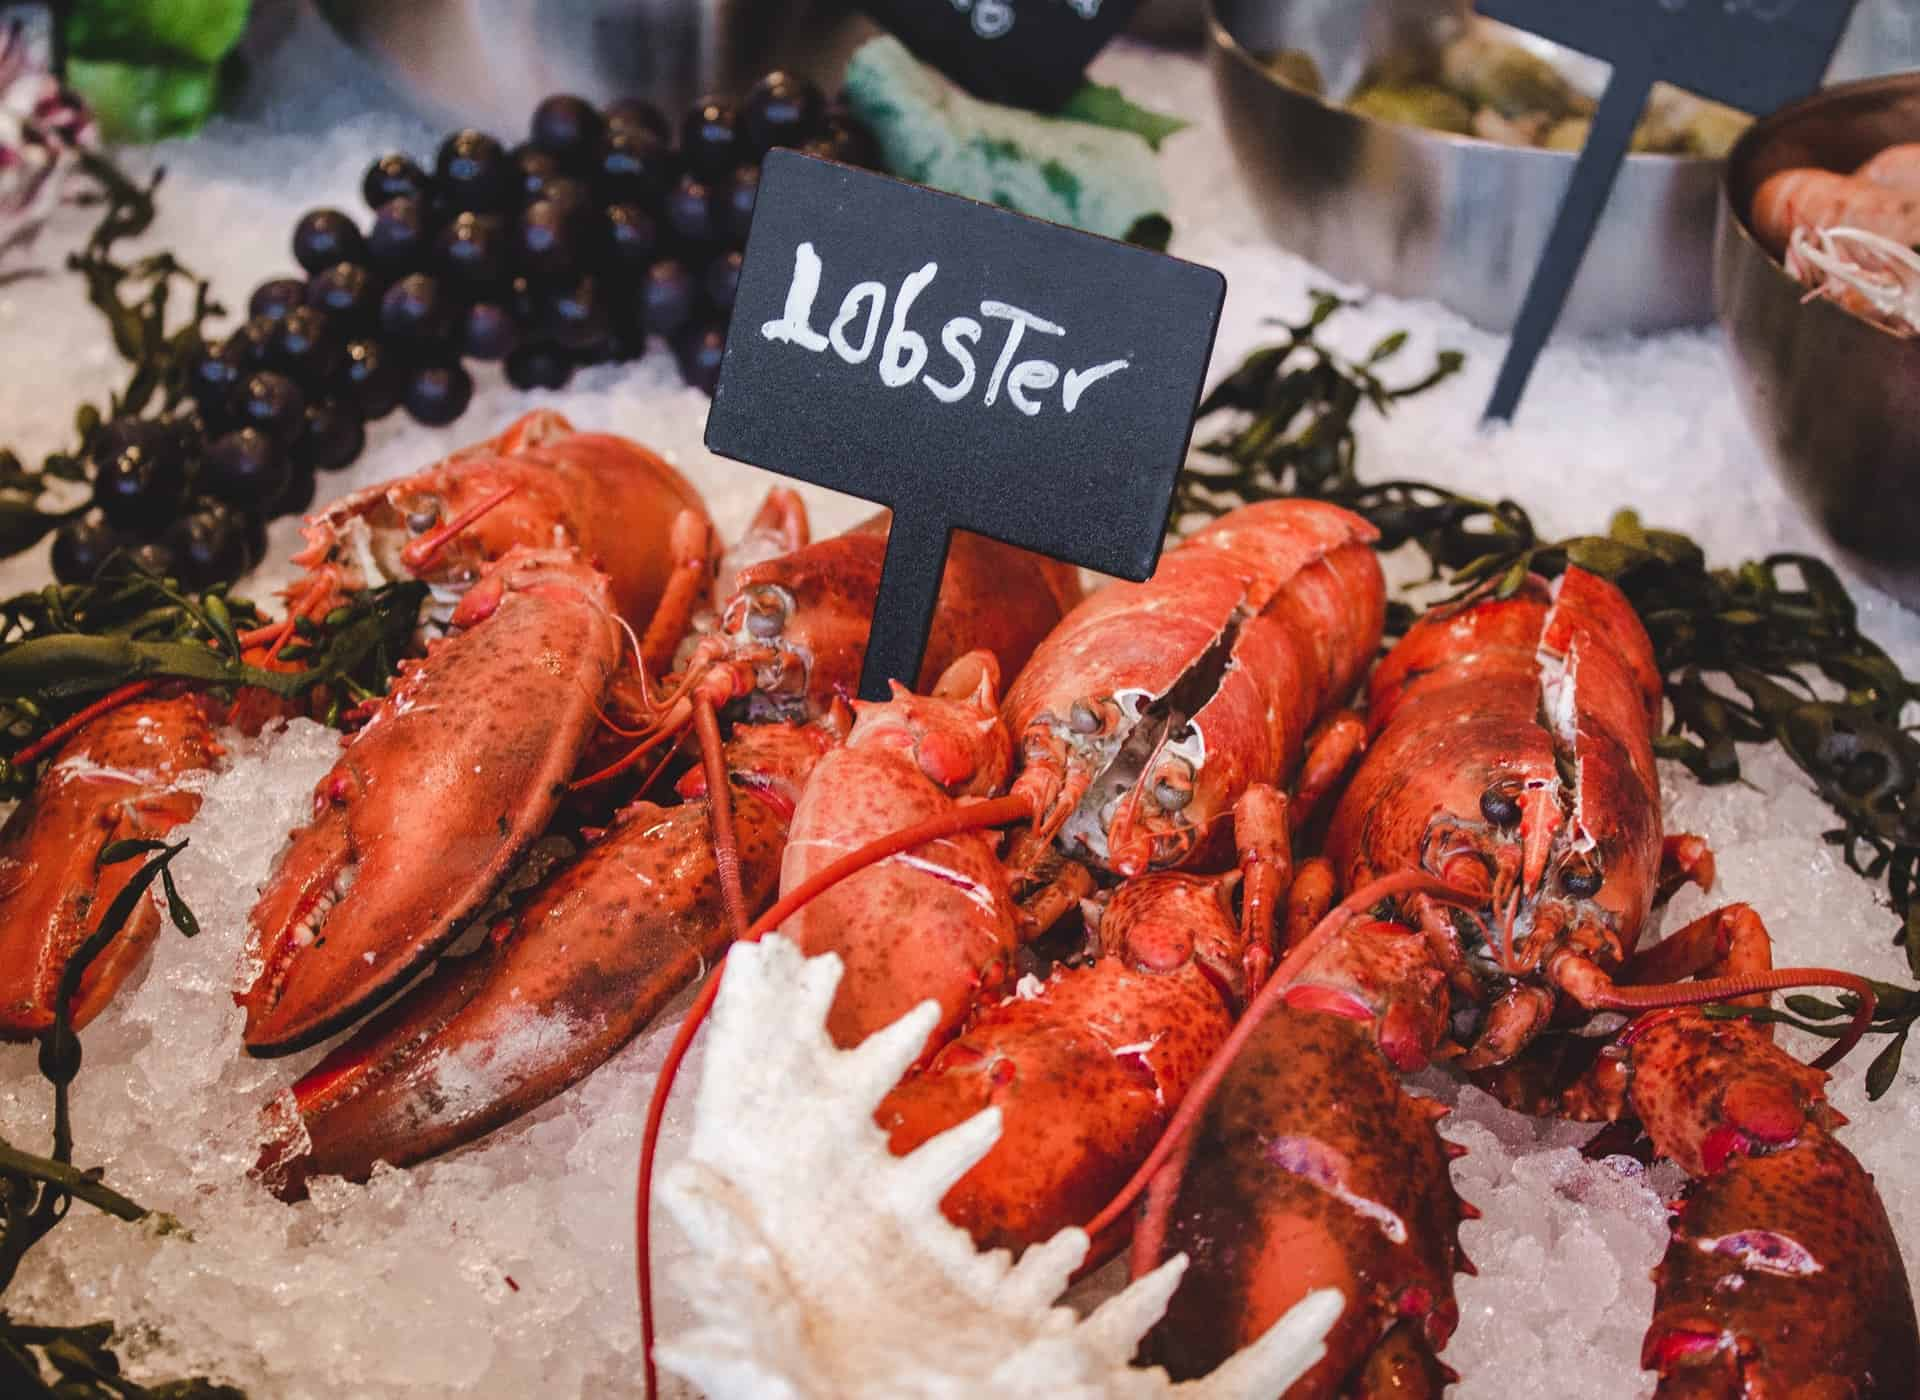 Lobster in a bucket of ice with a sign with